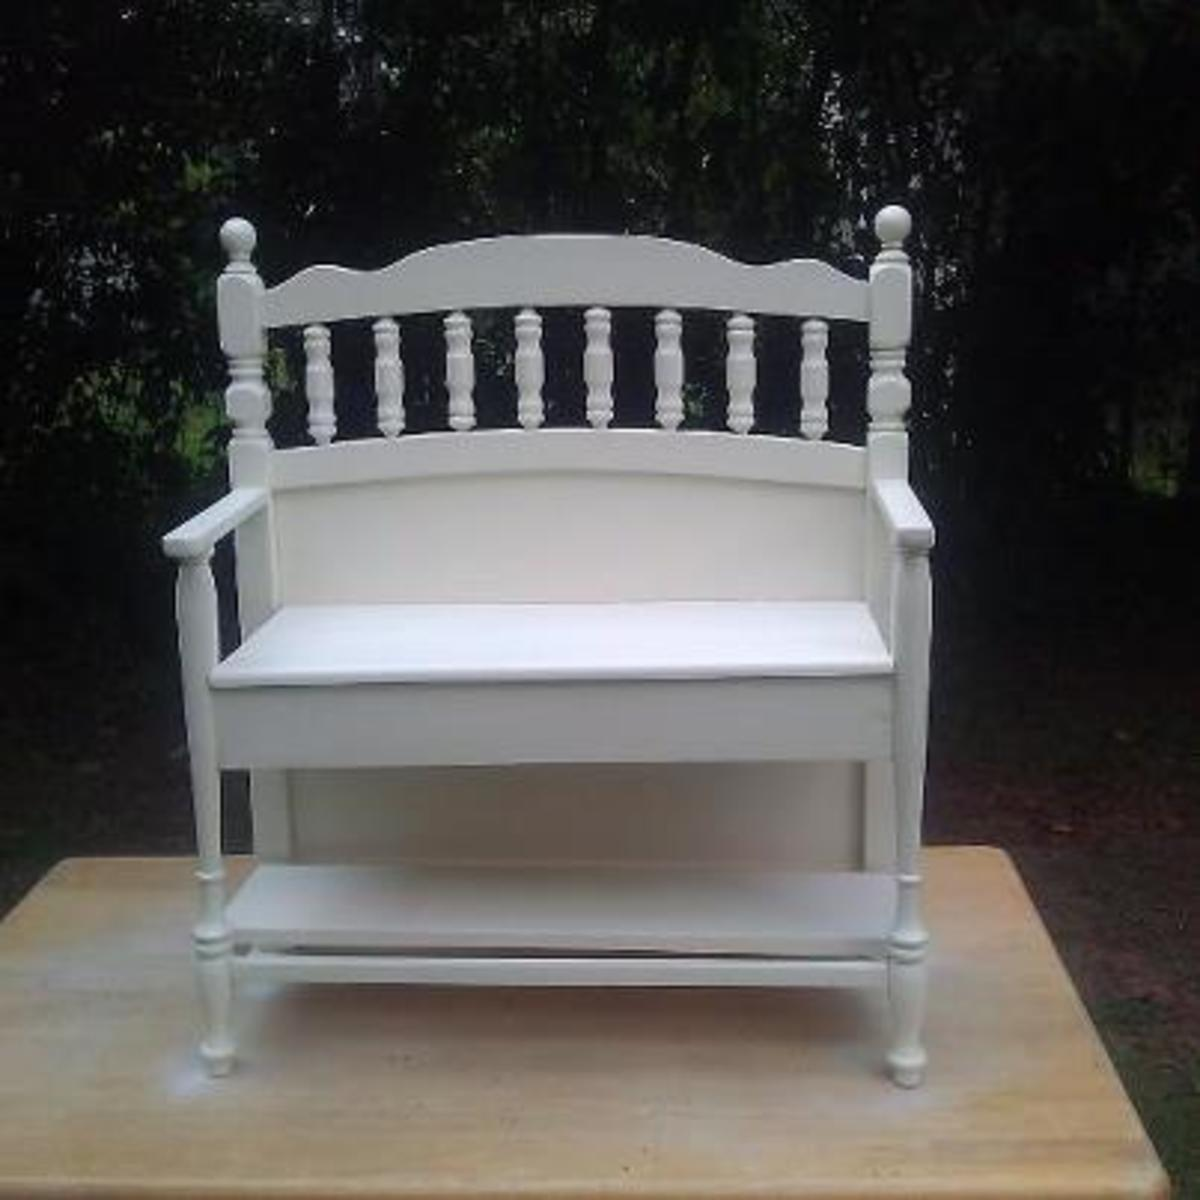 This cute little bench was built using the sections of an old crib!